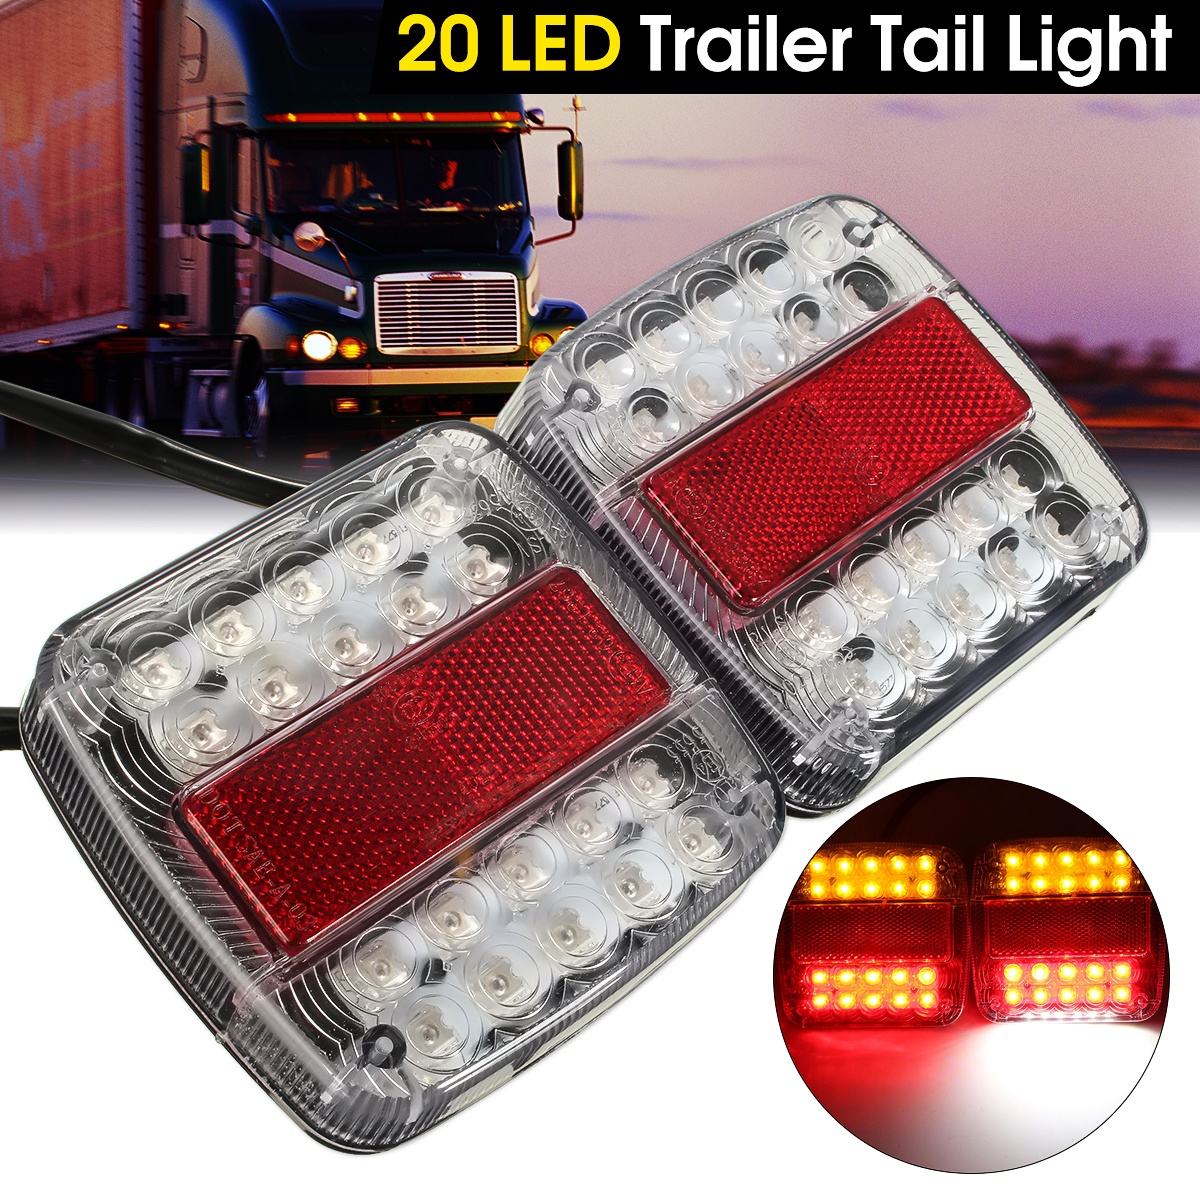 2x 12V 26 LED Taillight Turn Signal Light Rear Brake Stop Light Number License Plate Lamp For Car Truck Trailer E-Marked dishes stor 22311 baby tableware bamboo feedkid dinner set kids newborn